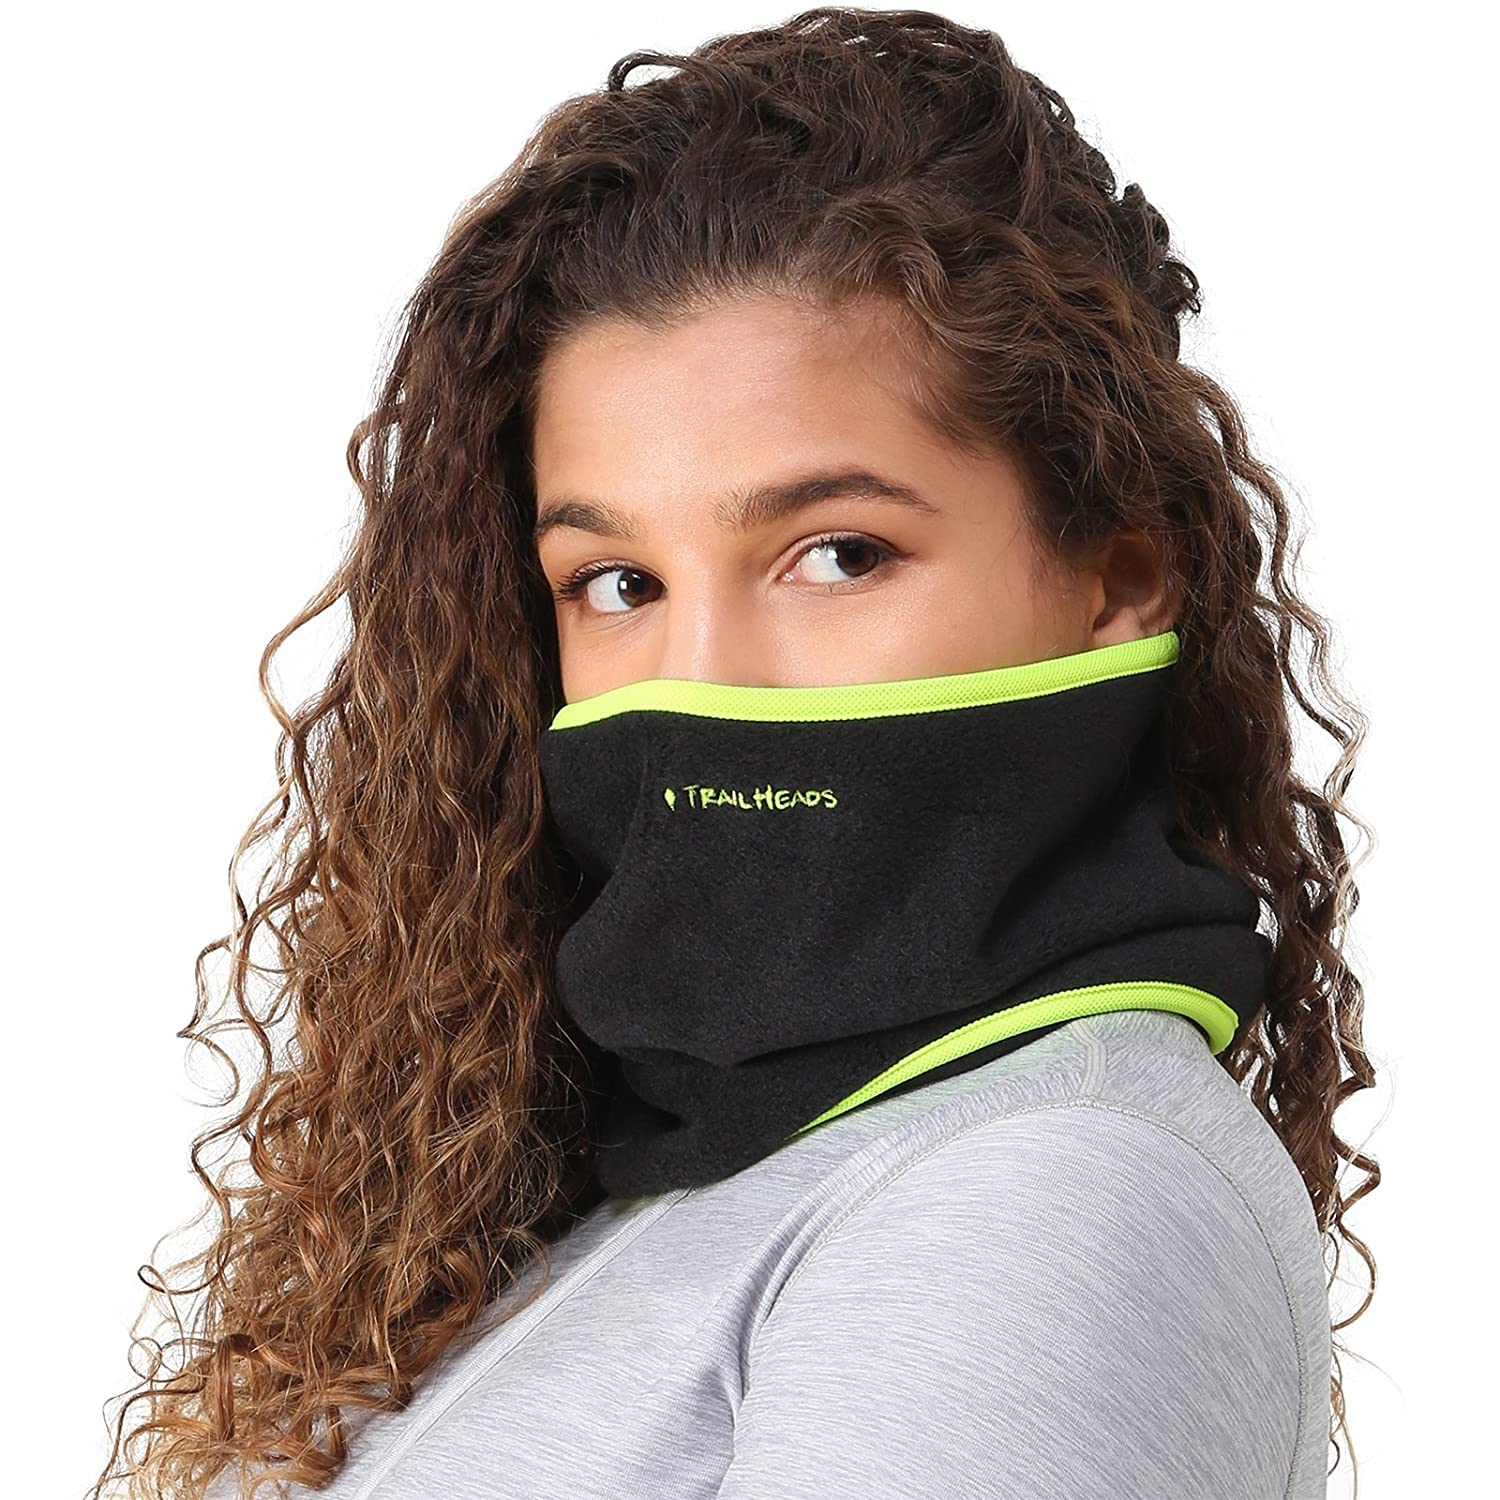 TrailHeads Neck Warmer - black/hi-vis